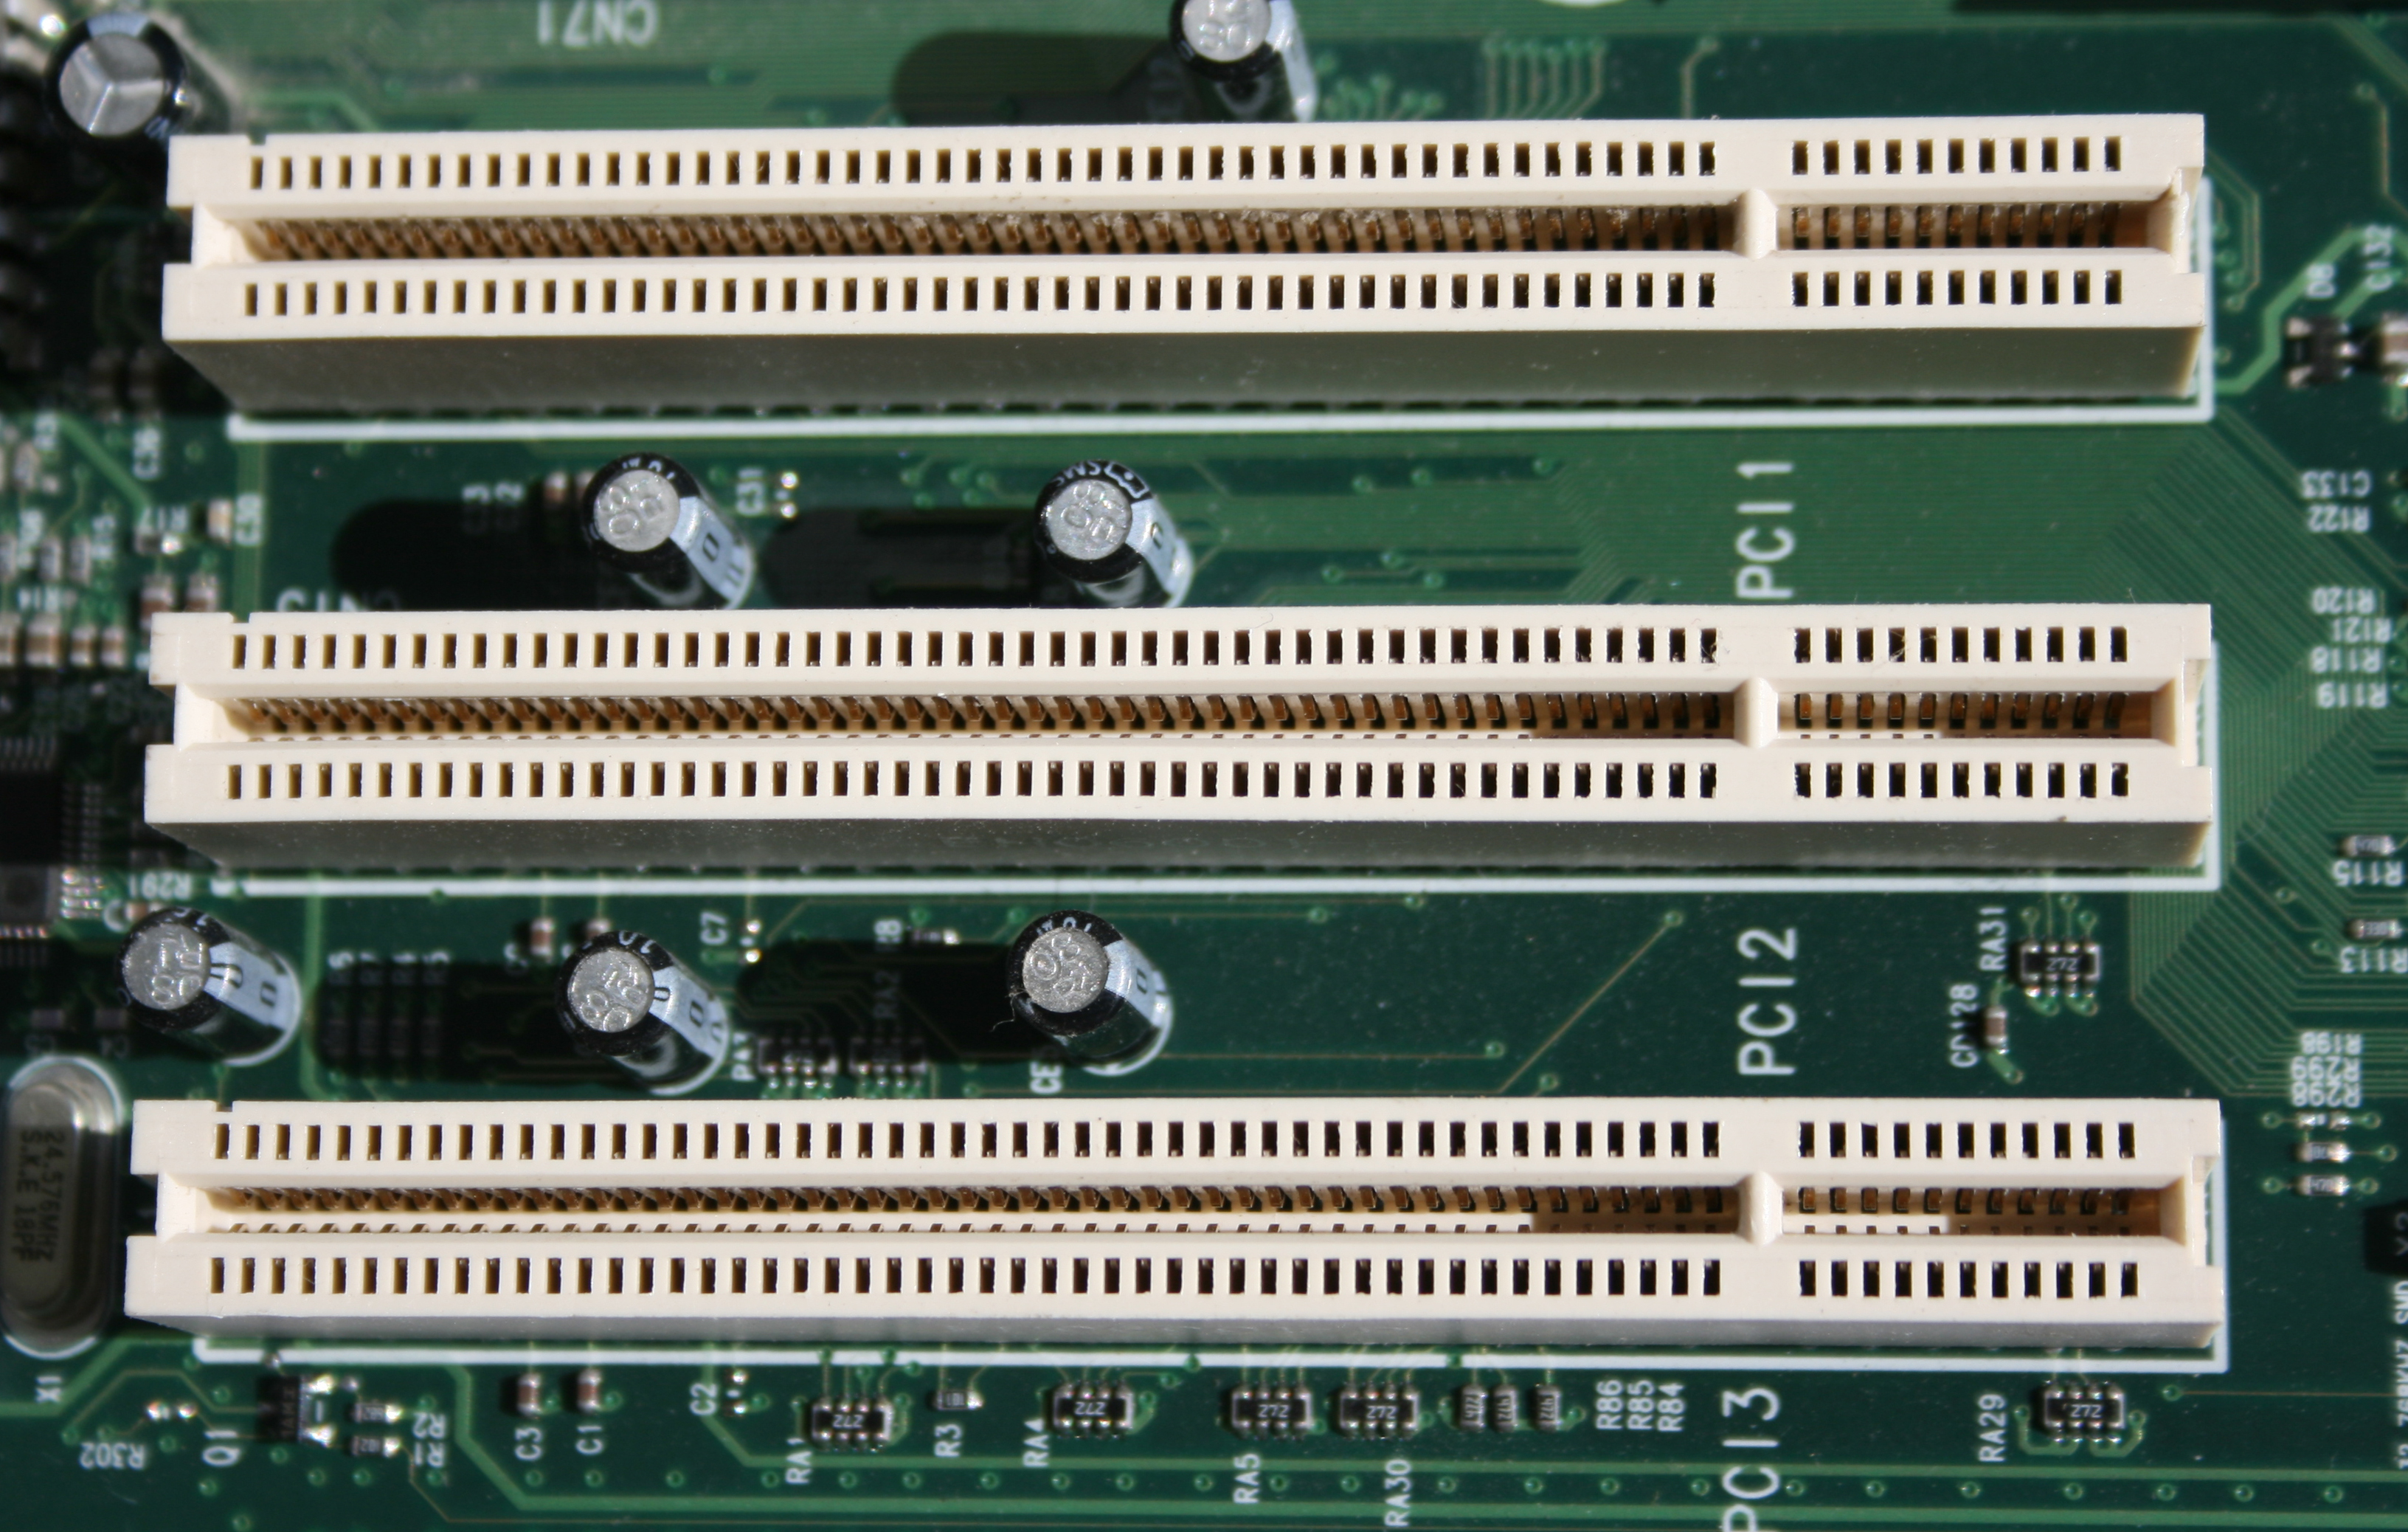 c09ac689422 Conventional PCI - Wikipedia